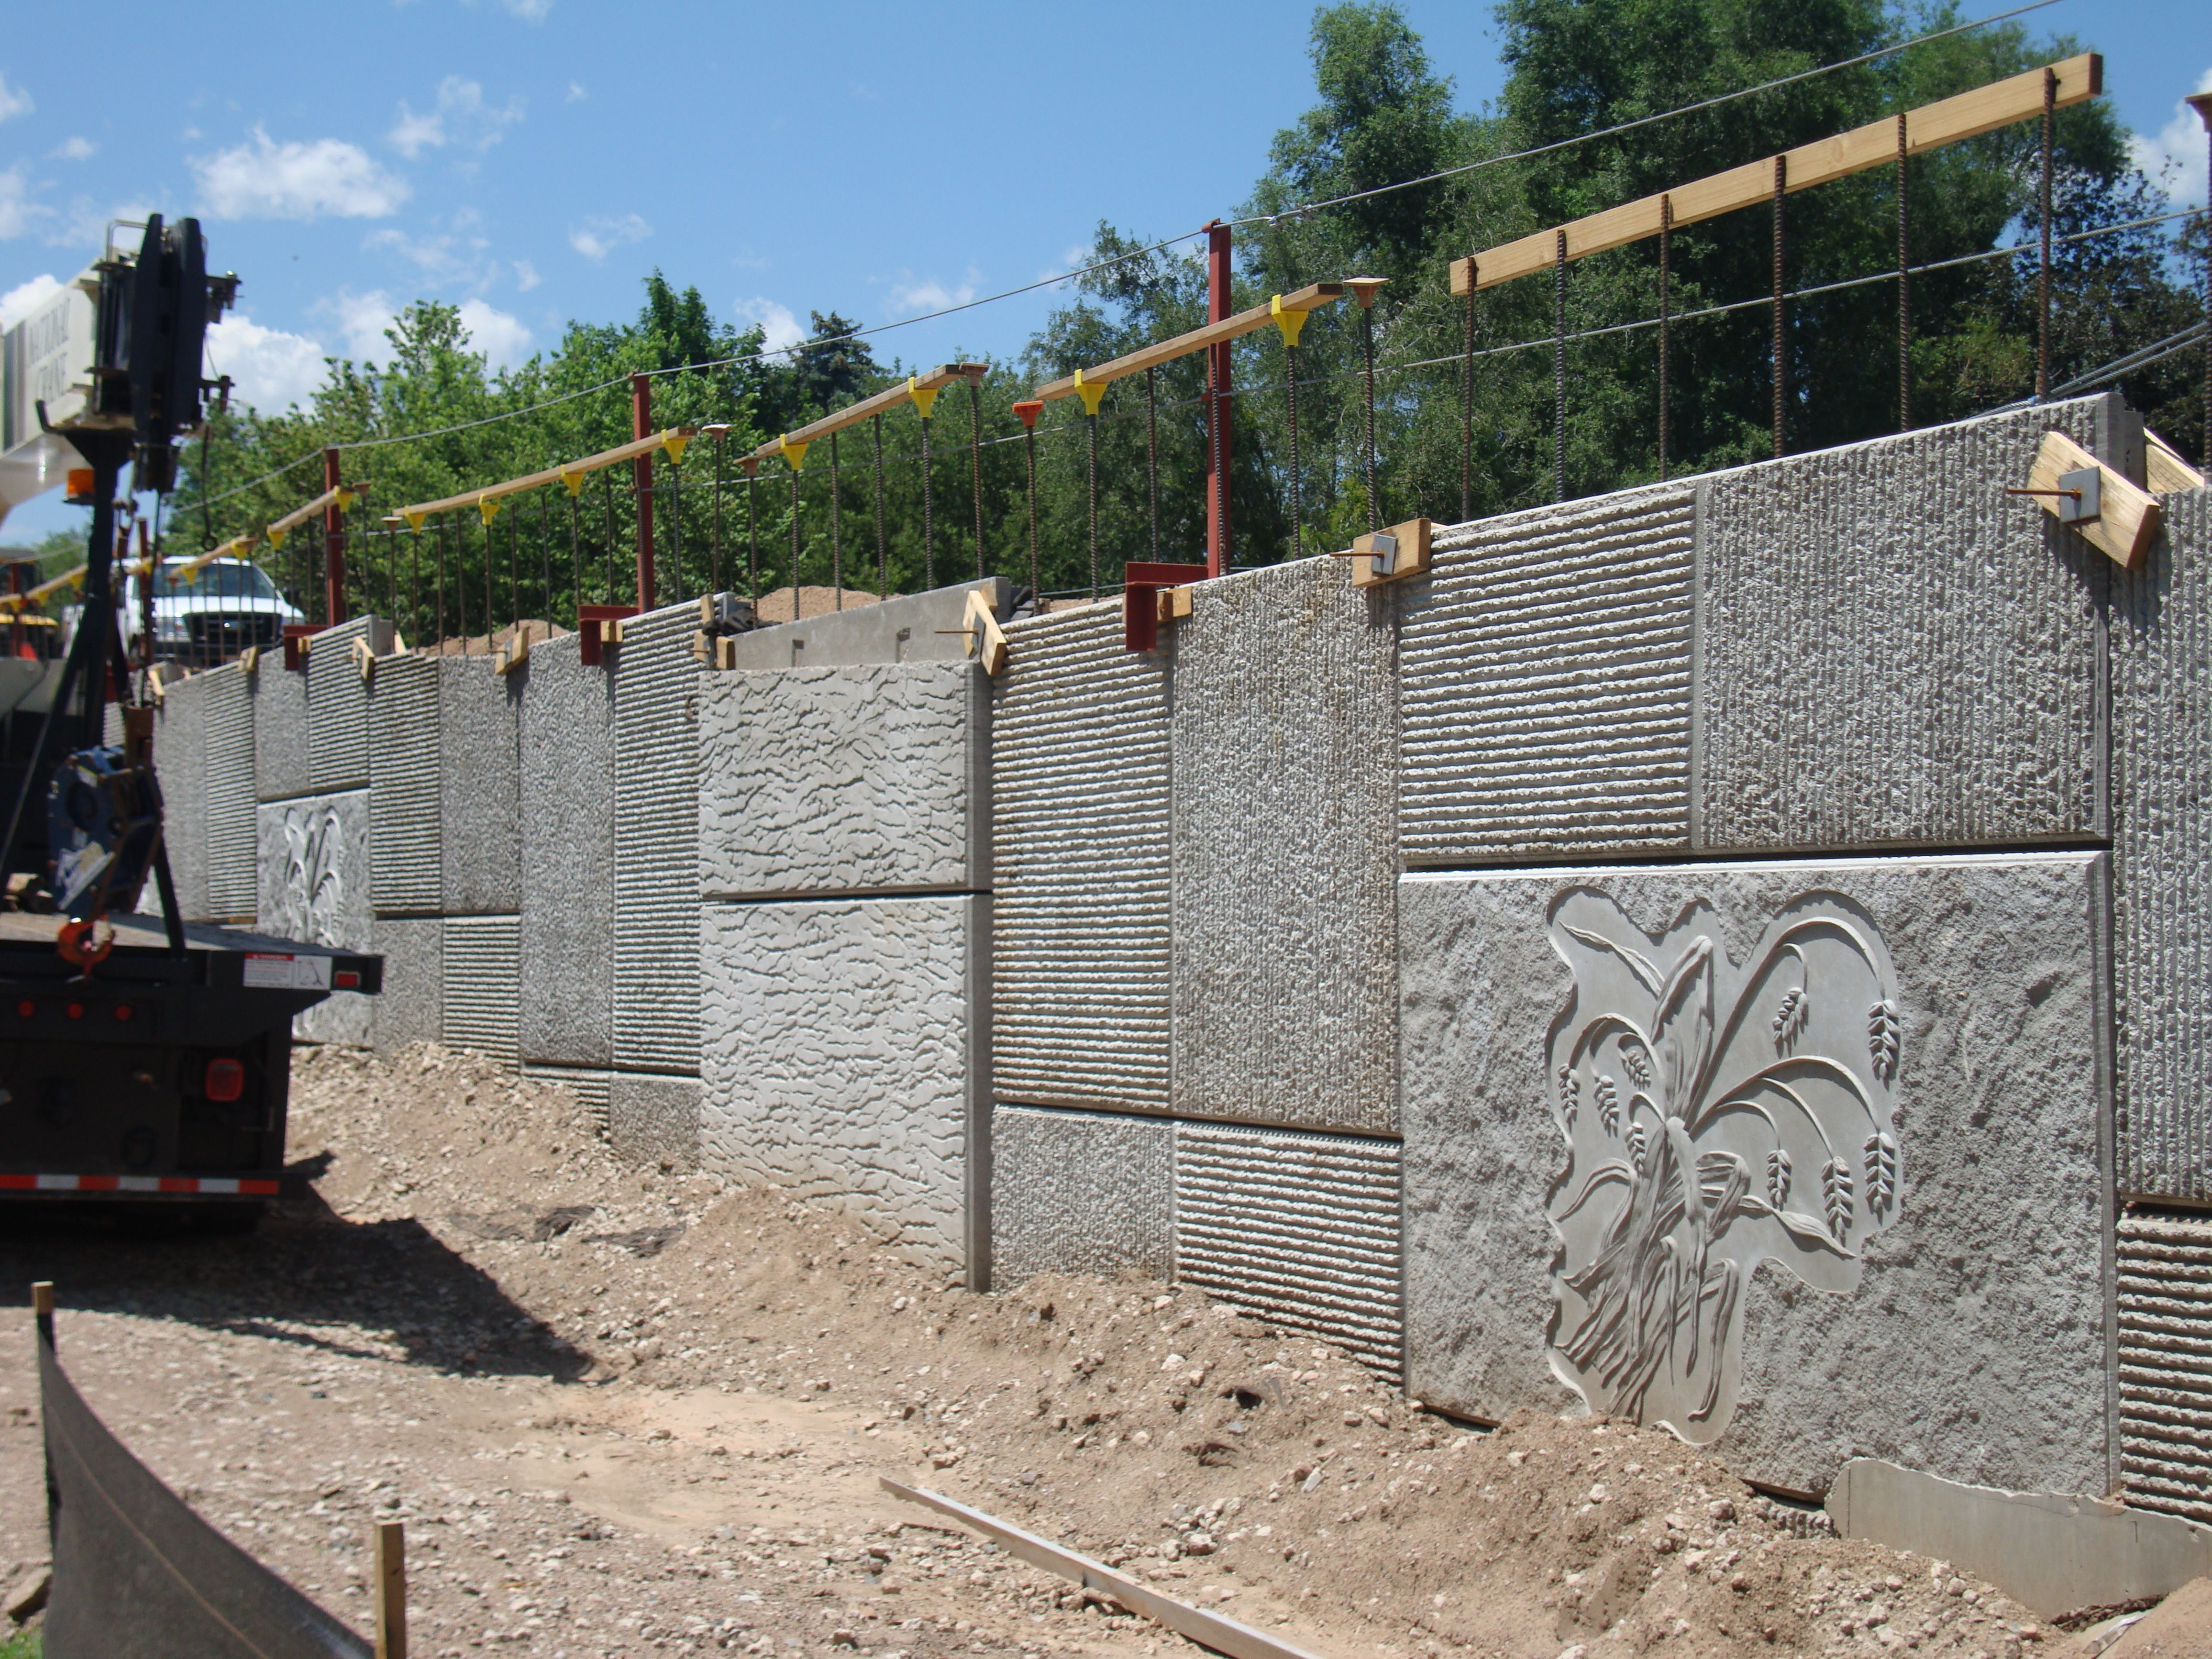 Mse Panels Featuring Concrete Textures Piece Together To Form A Retaining Wall Concrete Retaining Walls Concrete Art Concrete Texture